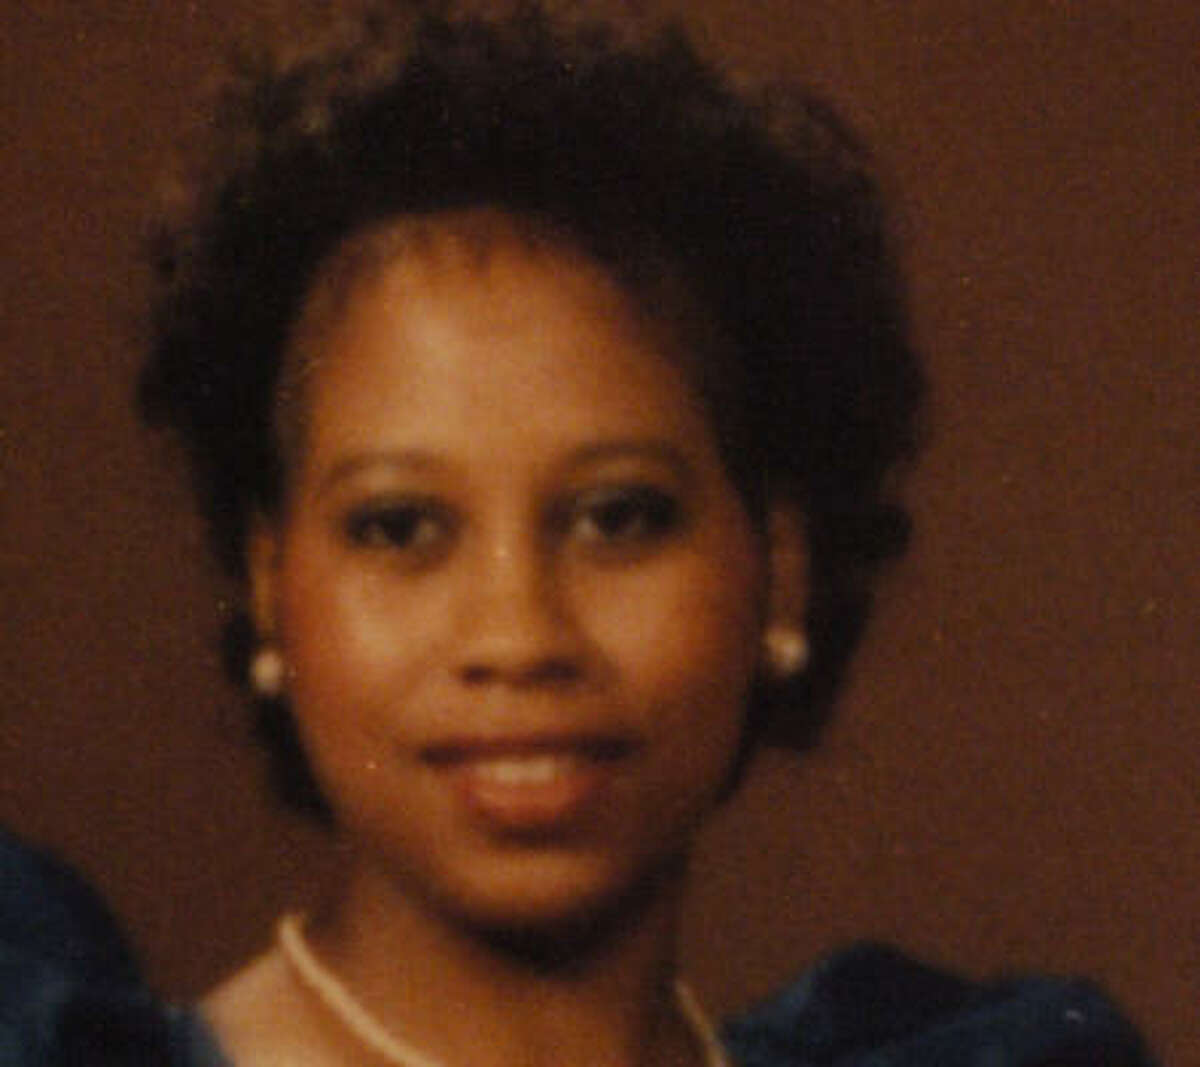 BEFORE THE SHOOTING: Carolyn Thomas was shot by Terrence Kelly, who was her boyfriend at the time.